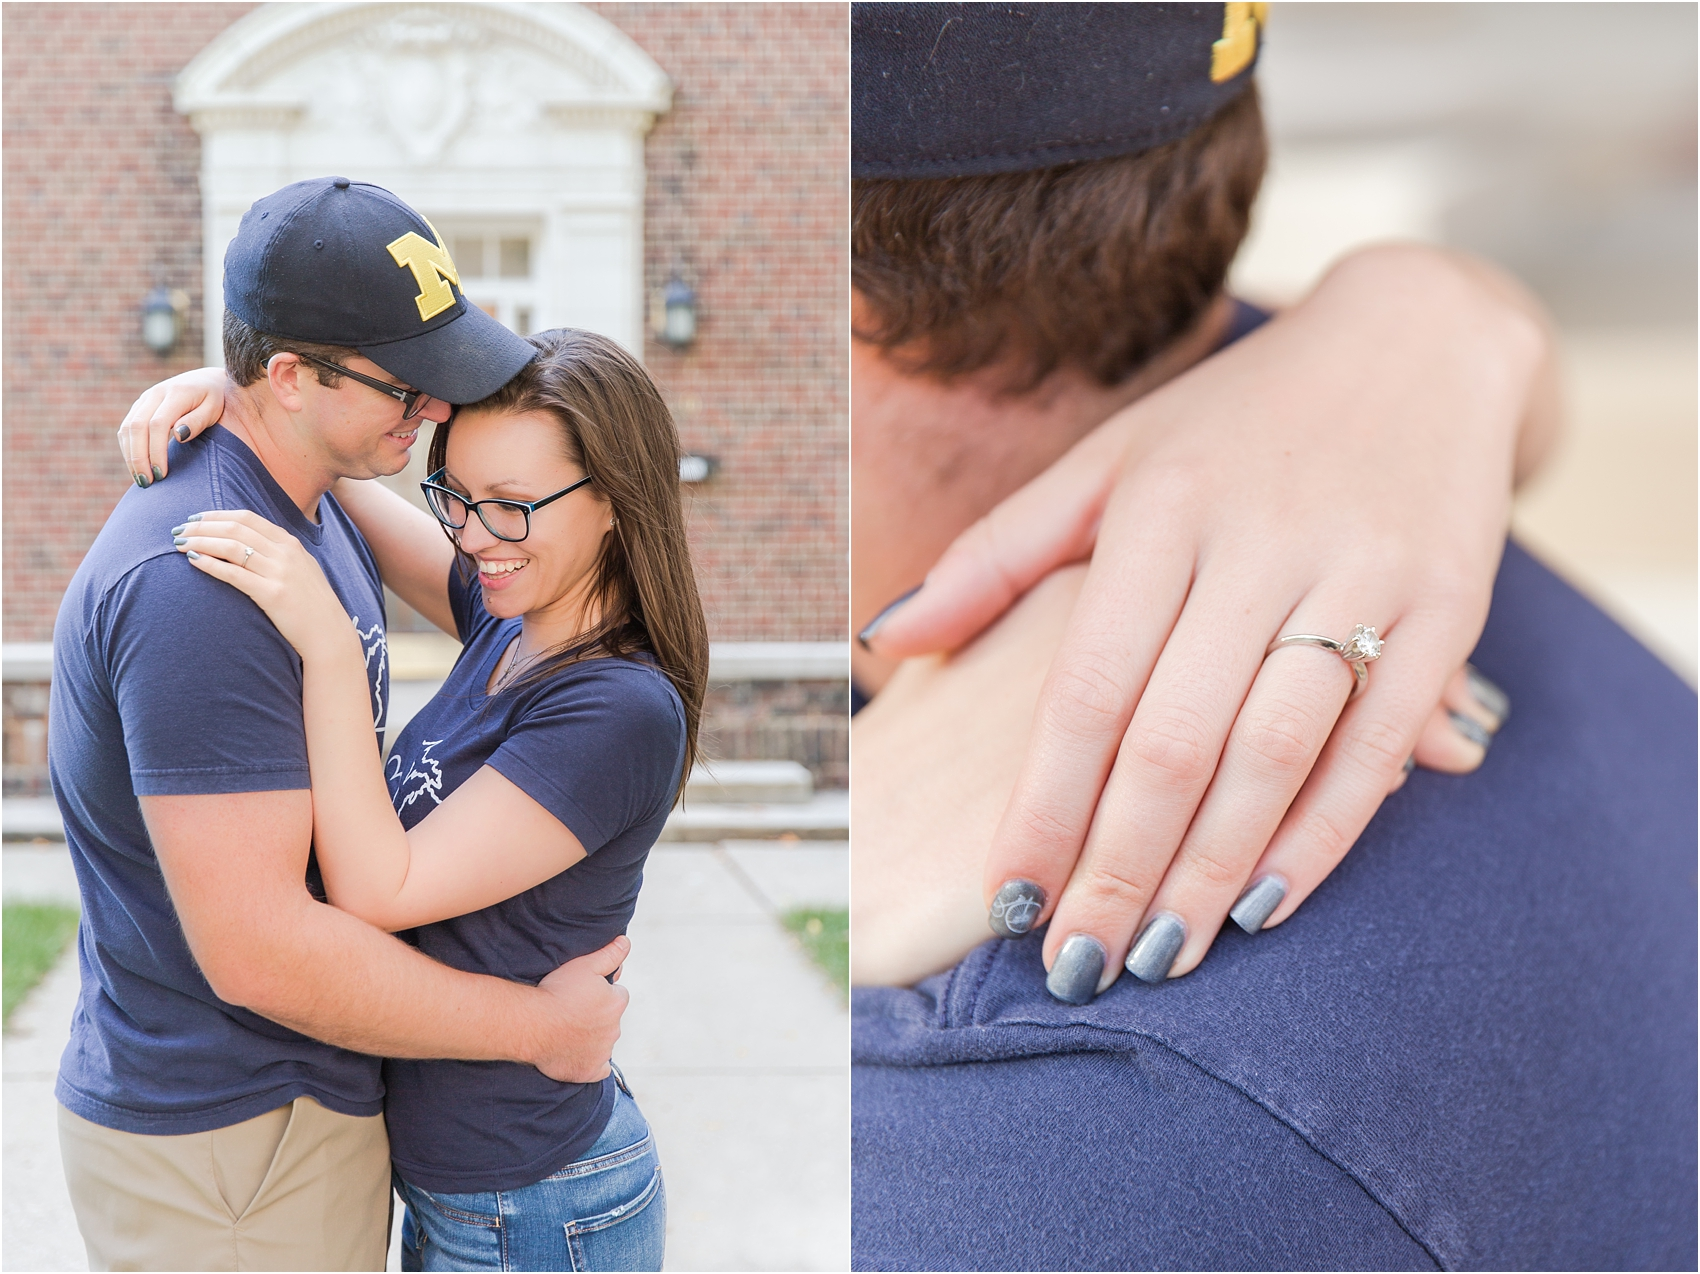 classic-fall-engagement-photos-at-the-university-of-michigan-in-ann-arbor-mi-by-courtney-carolyn-photography_0014.jpg